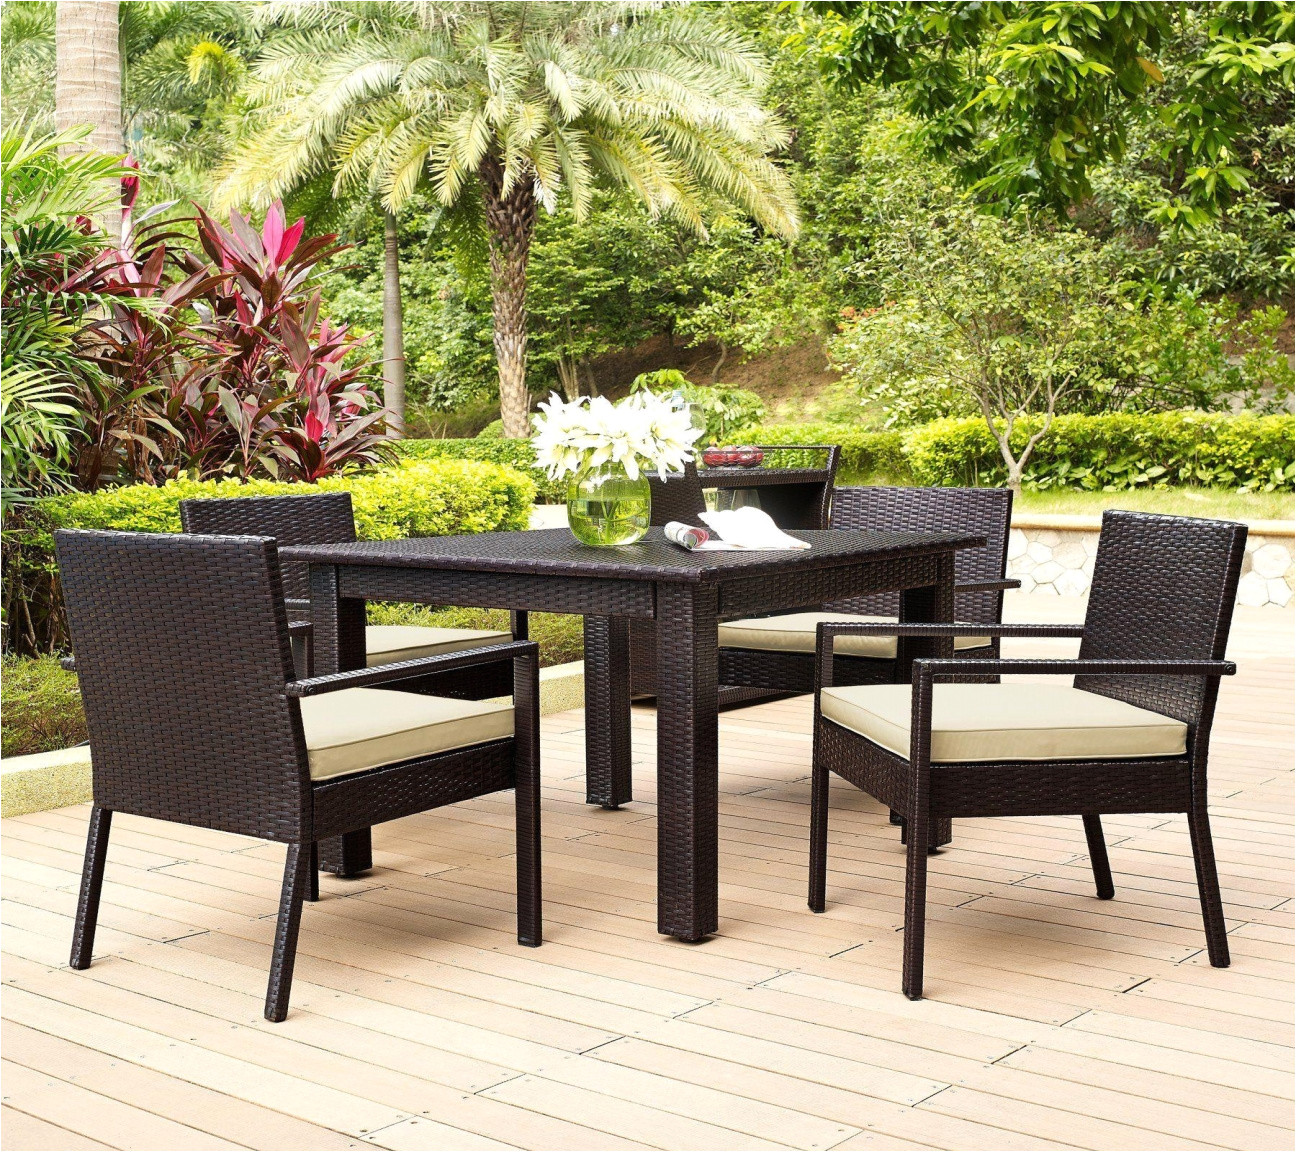 cheap wicker chairs uk bench table set outdoor patio dining sets new wicker outdoor sofa 0d